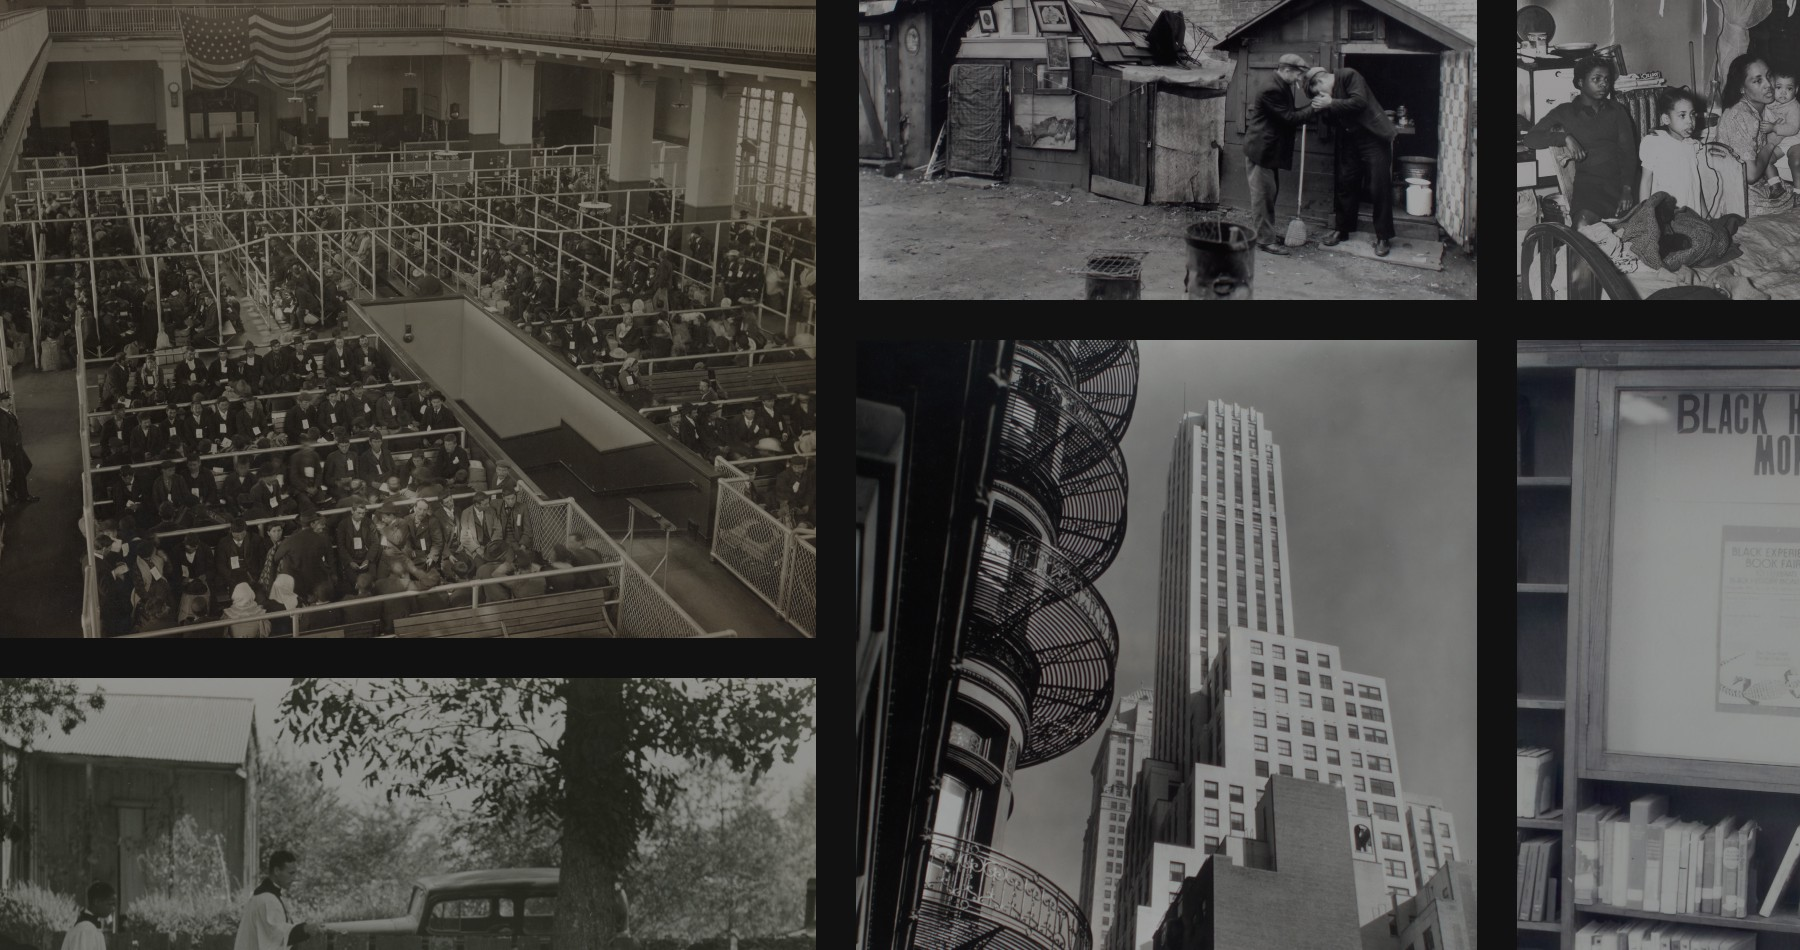 Unsplash enters new territory with the New York Public Library